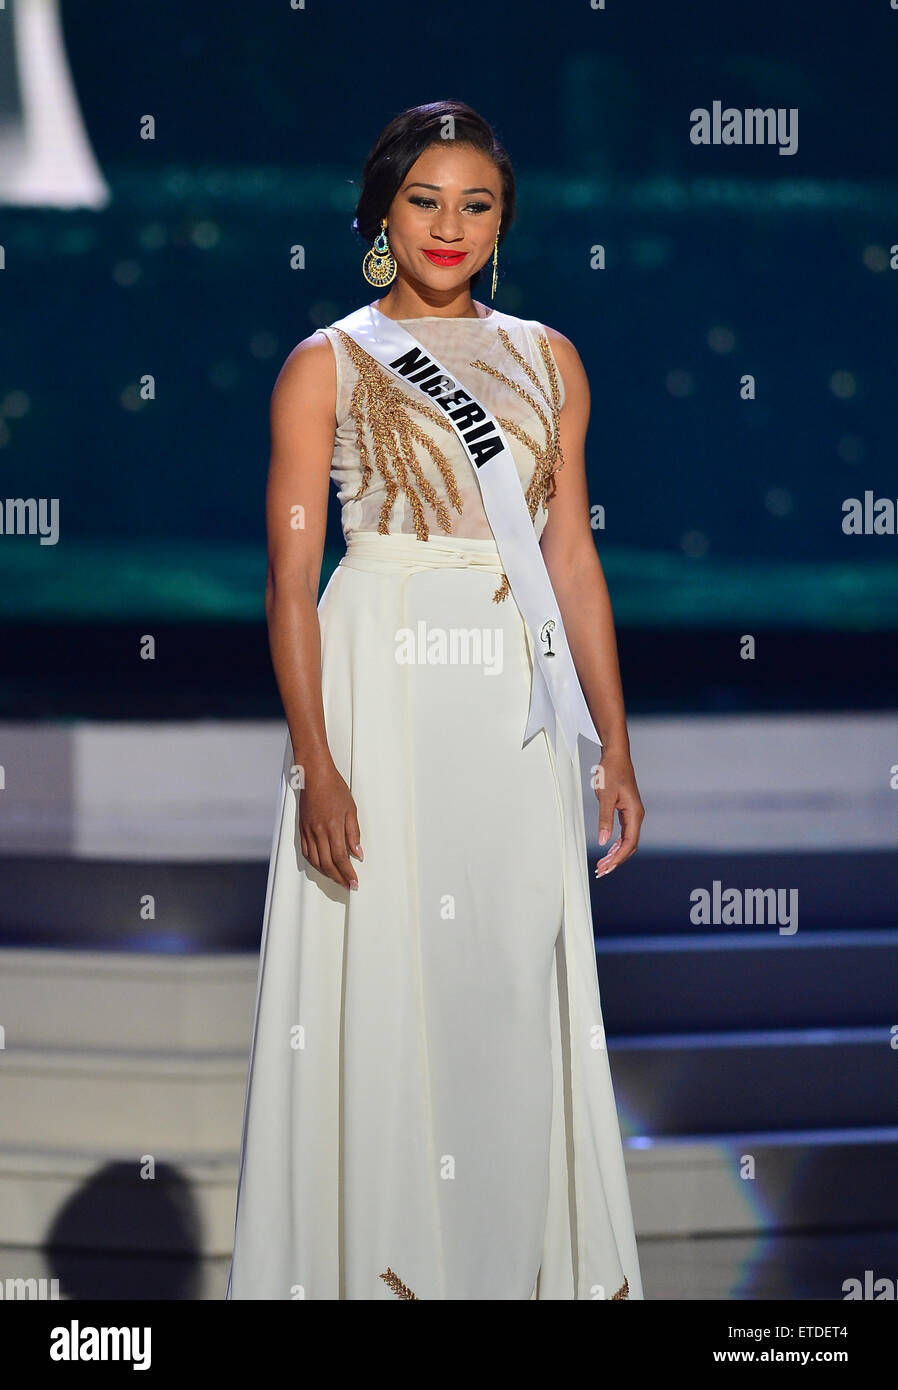 63rd Annual Miss Universe Pageant - Preliminary Show: Evening Gown Competition at Florida International University - Stock Image